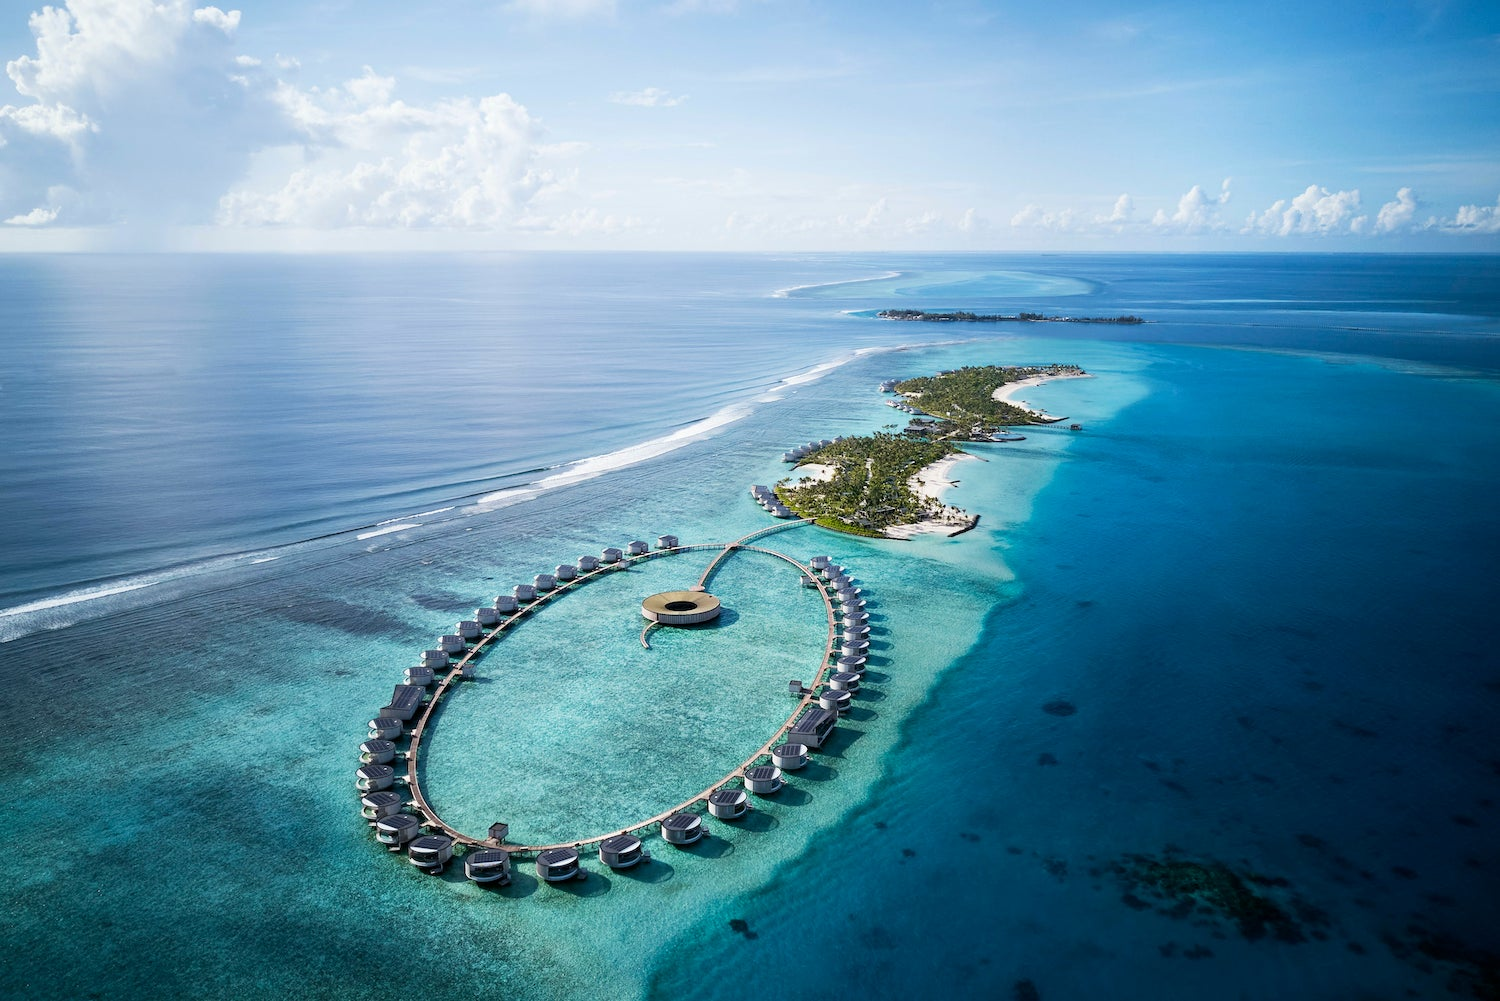 10 incredible overwater bungalows you can book with points - The Points Guy